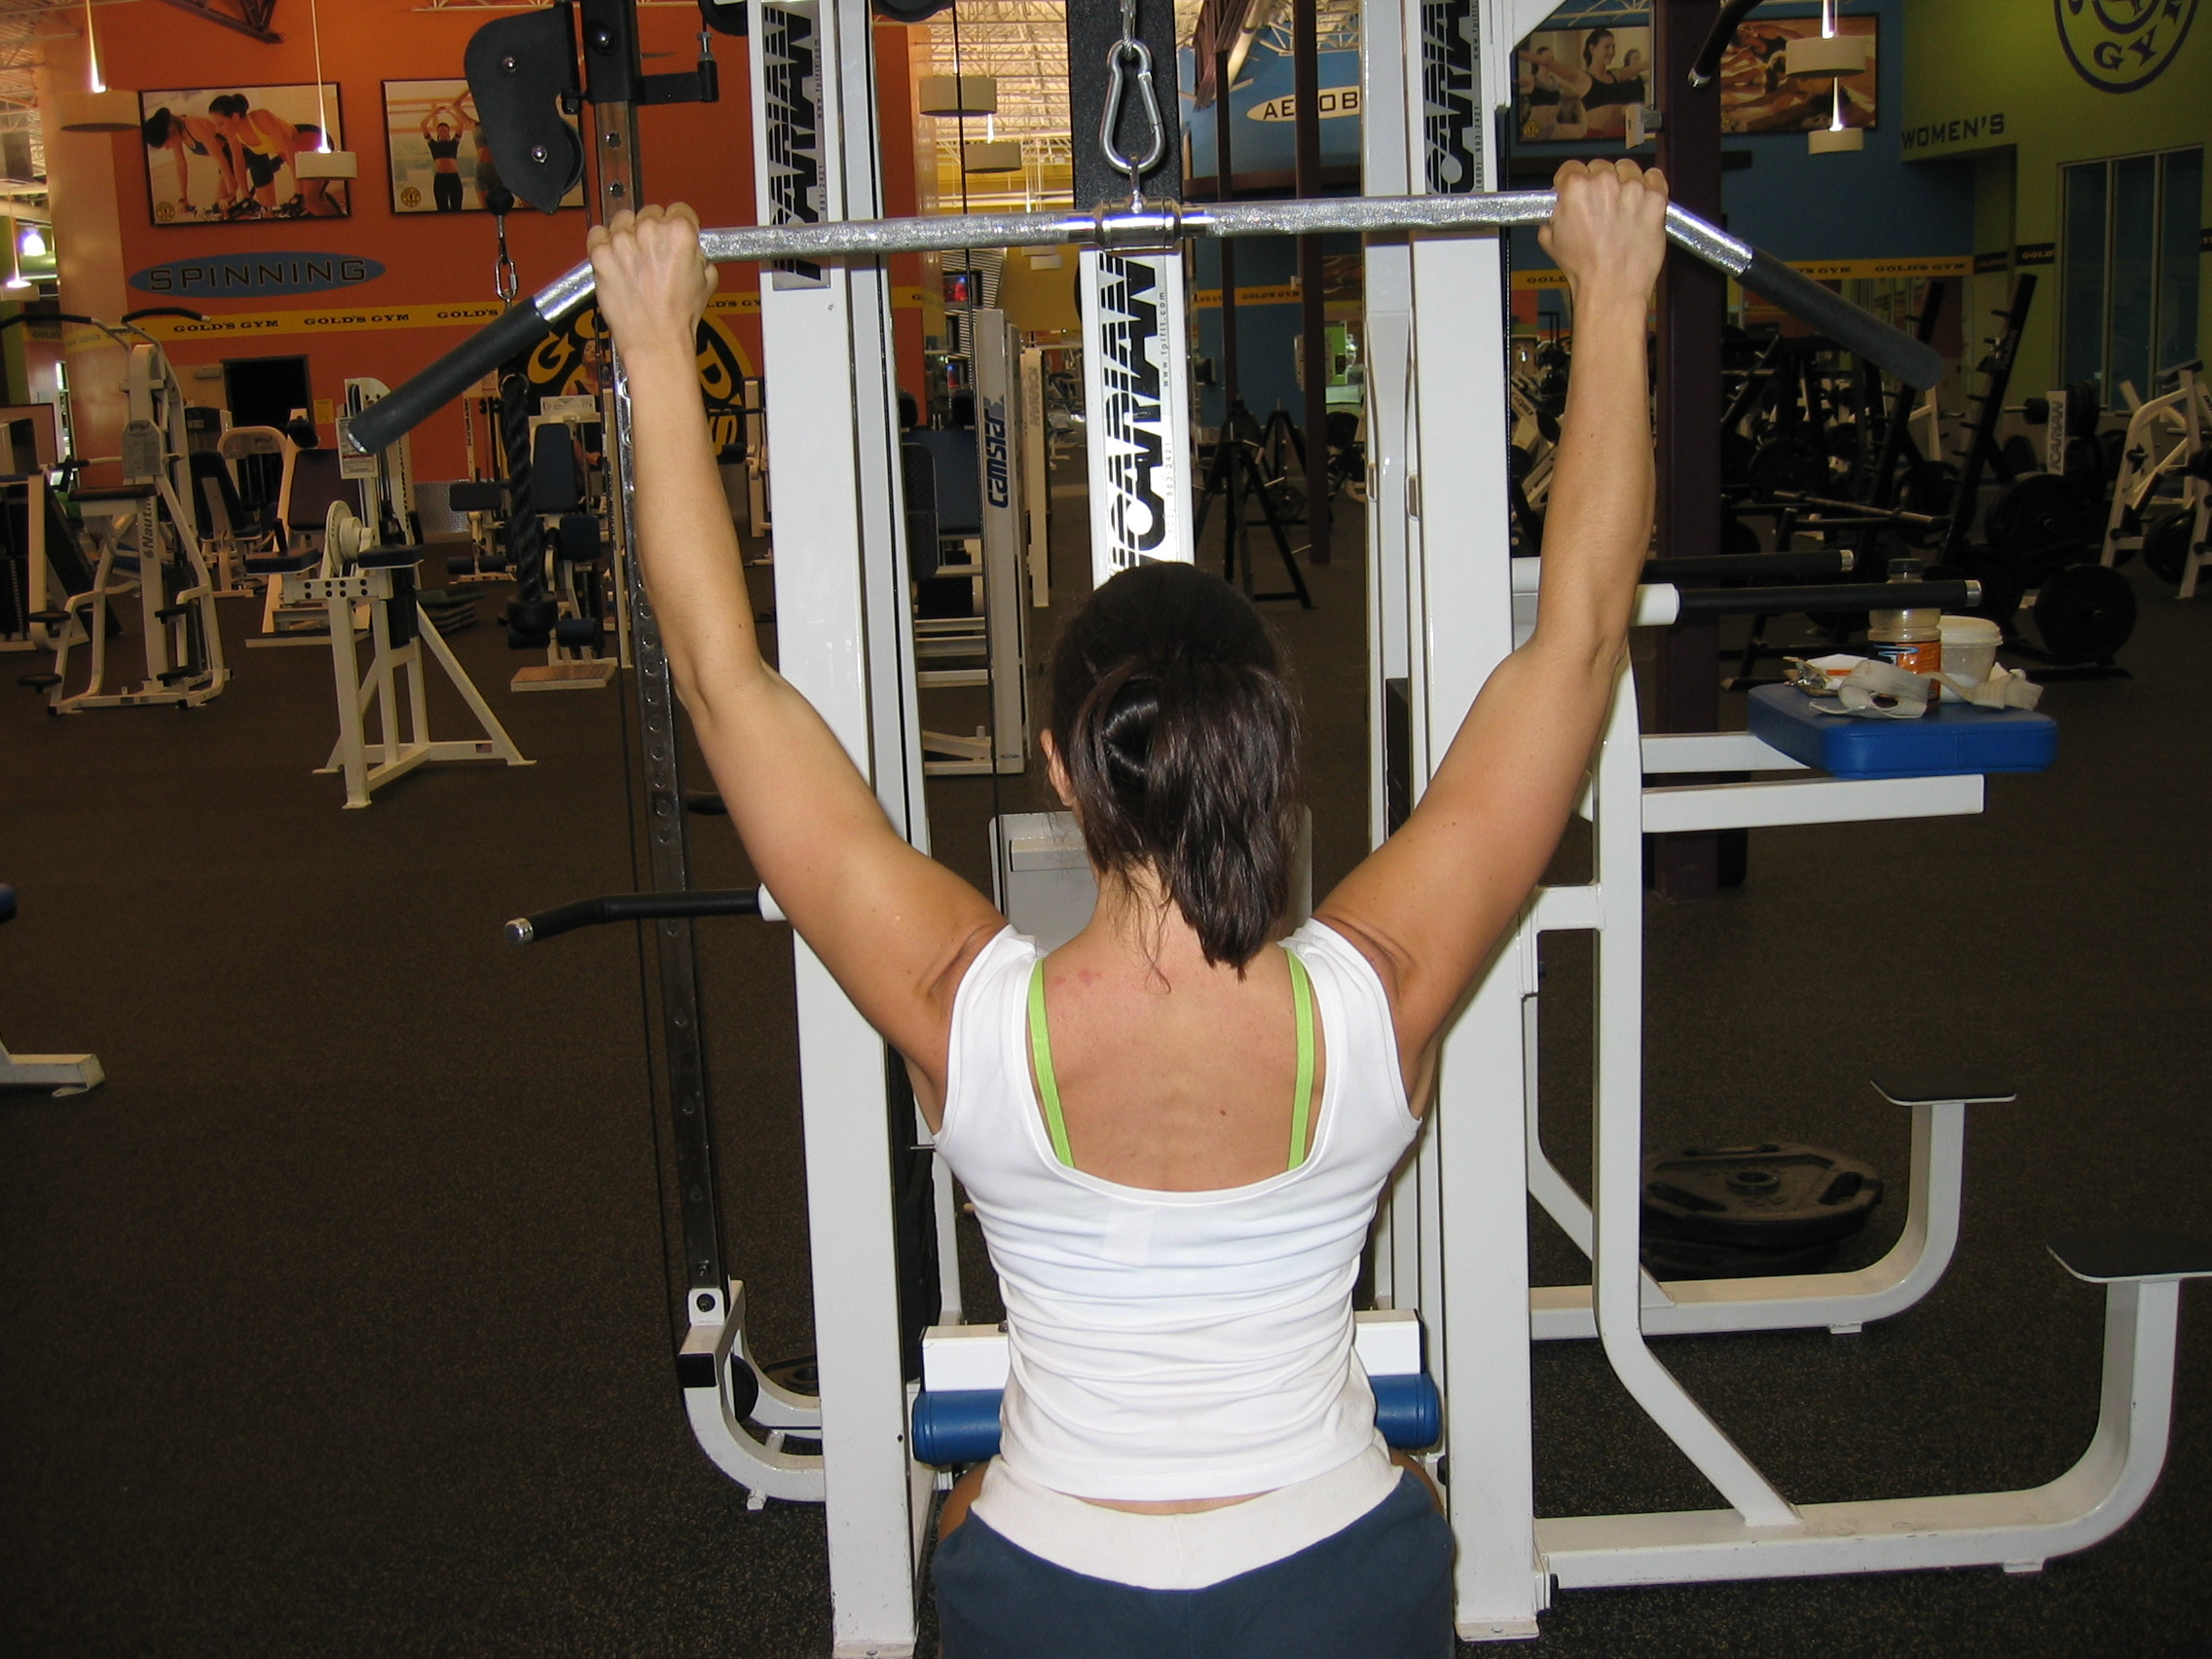 Low Cable Pull : Lat pulldown technique